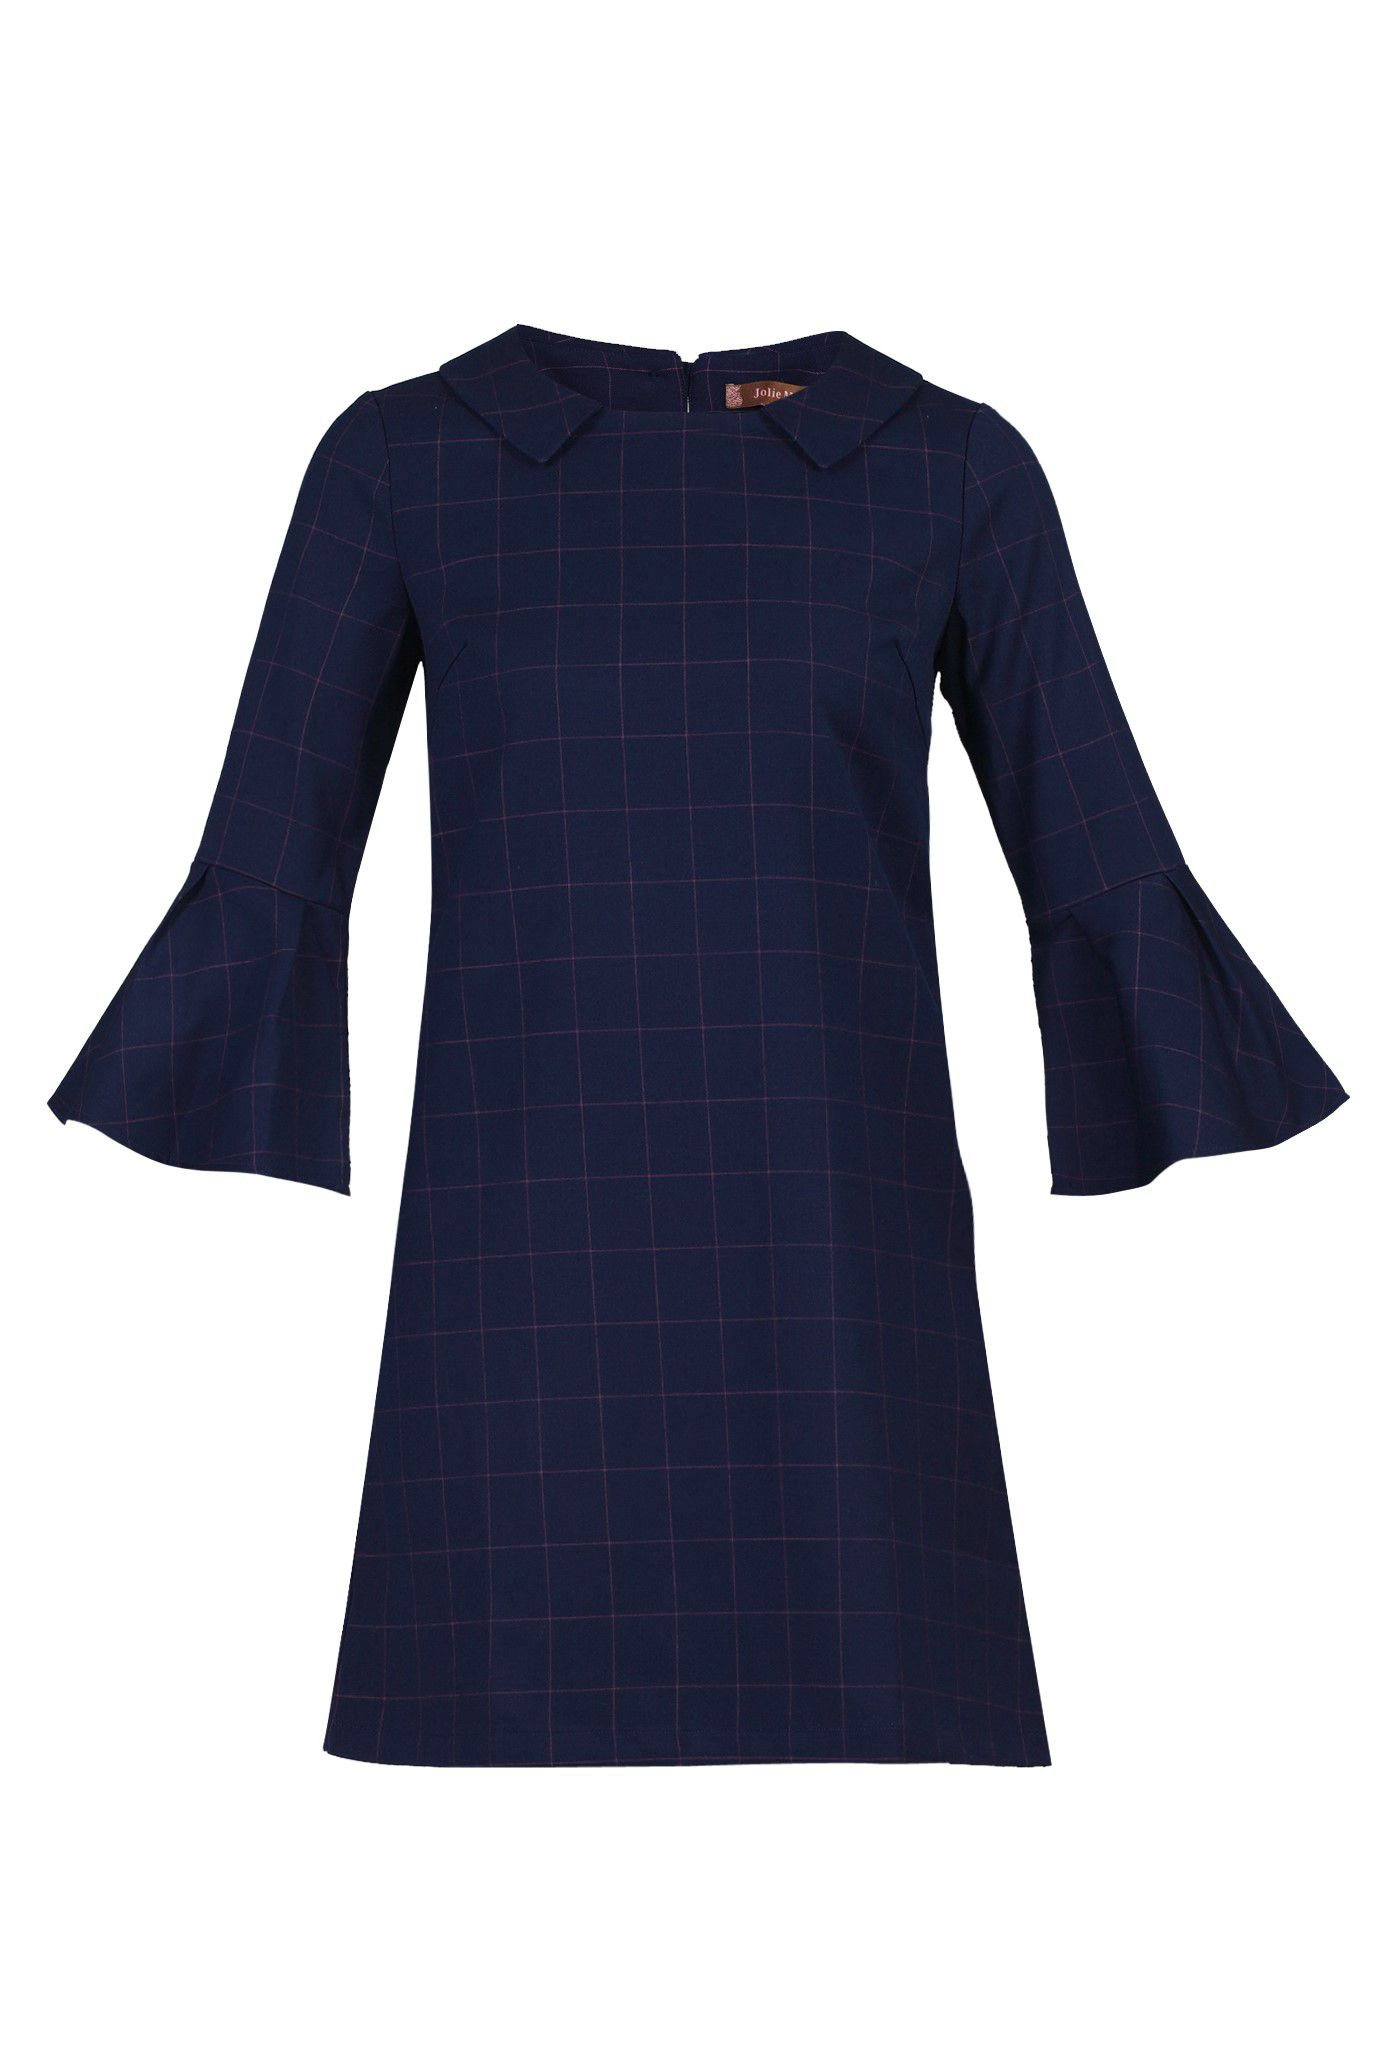 Jolie Moi Checked Fluted Sleeve Tunic, Blue